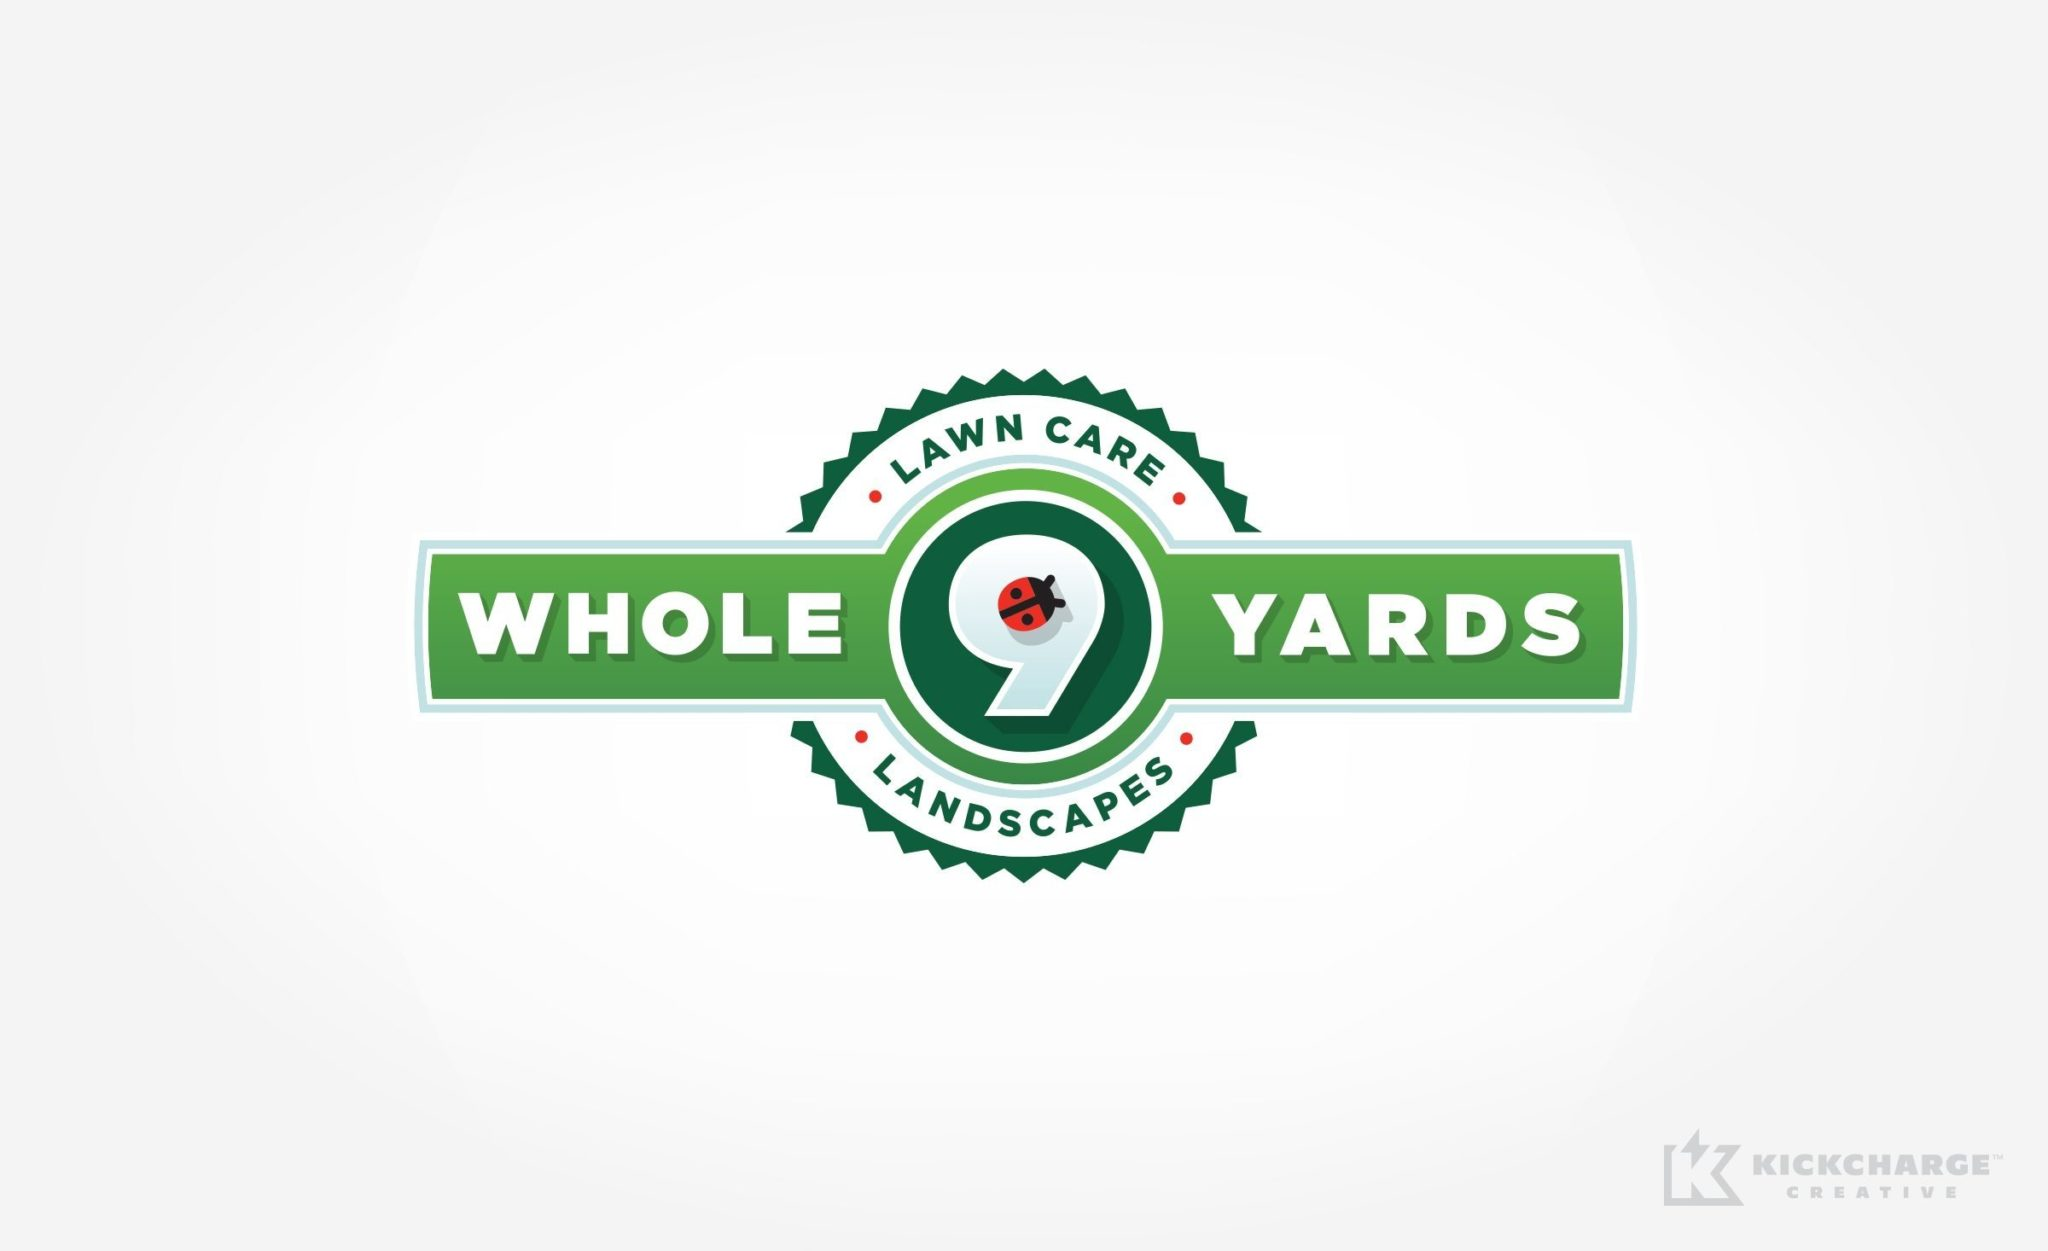 Logo design for Whole 9 Yards Lawn Care and Landscaping serving Flemington, New Jersey.